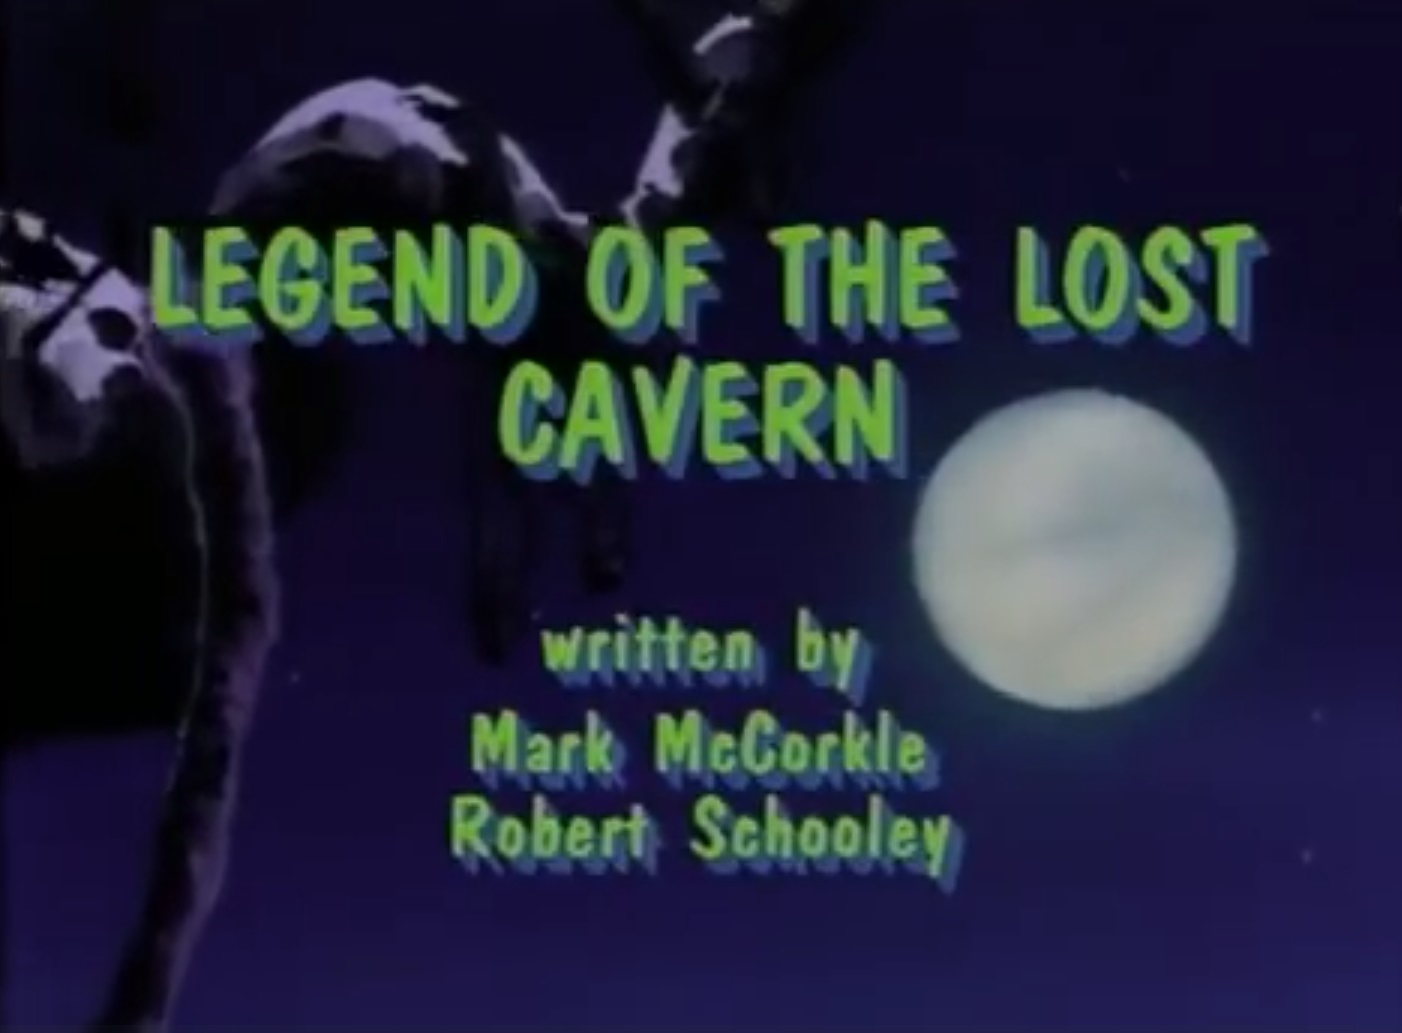 Legend of the Lost Cavern